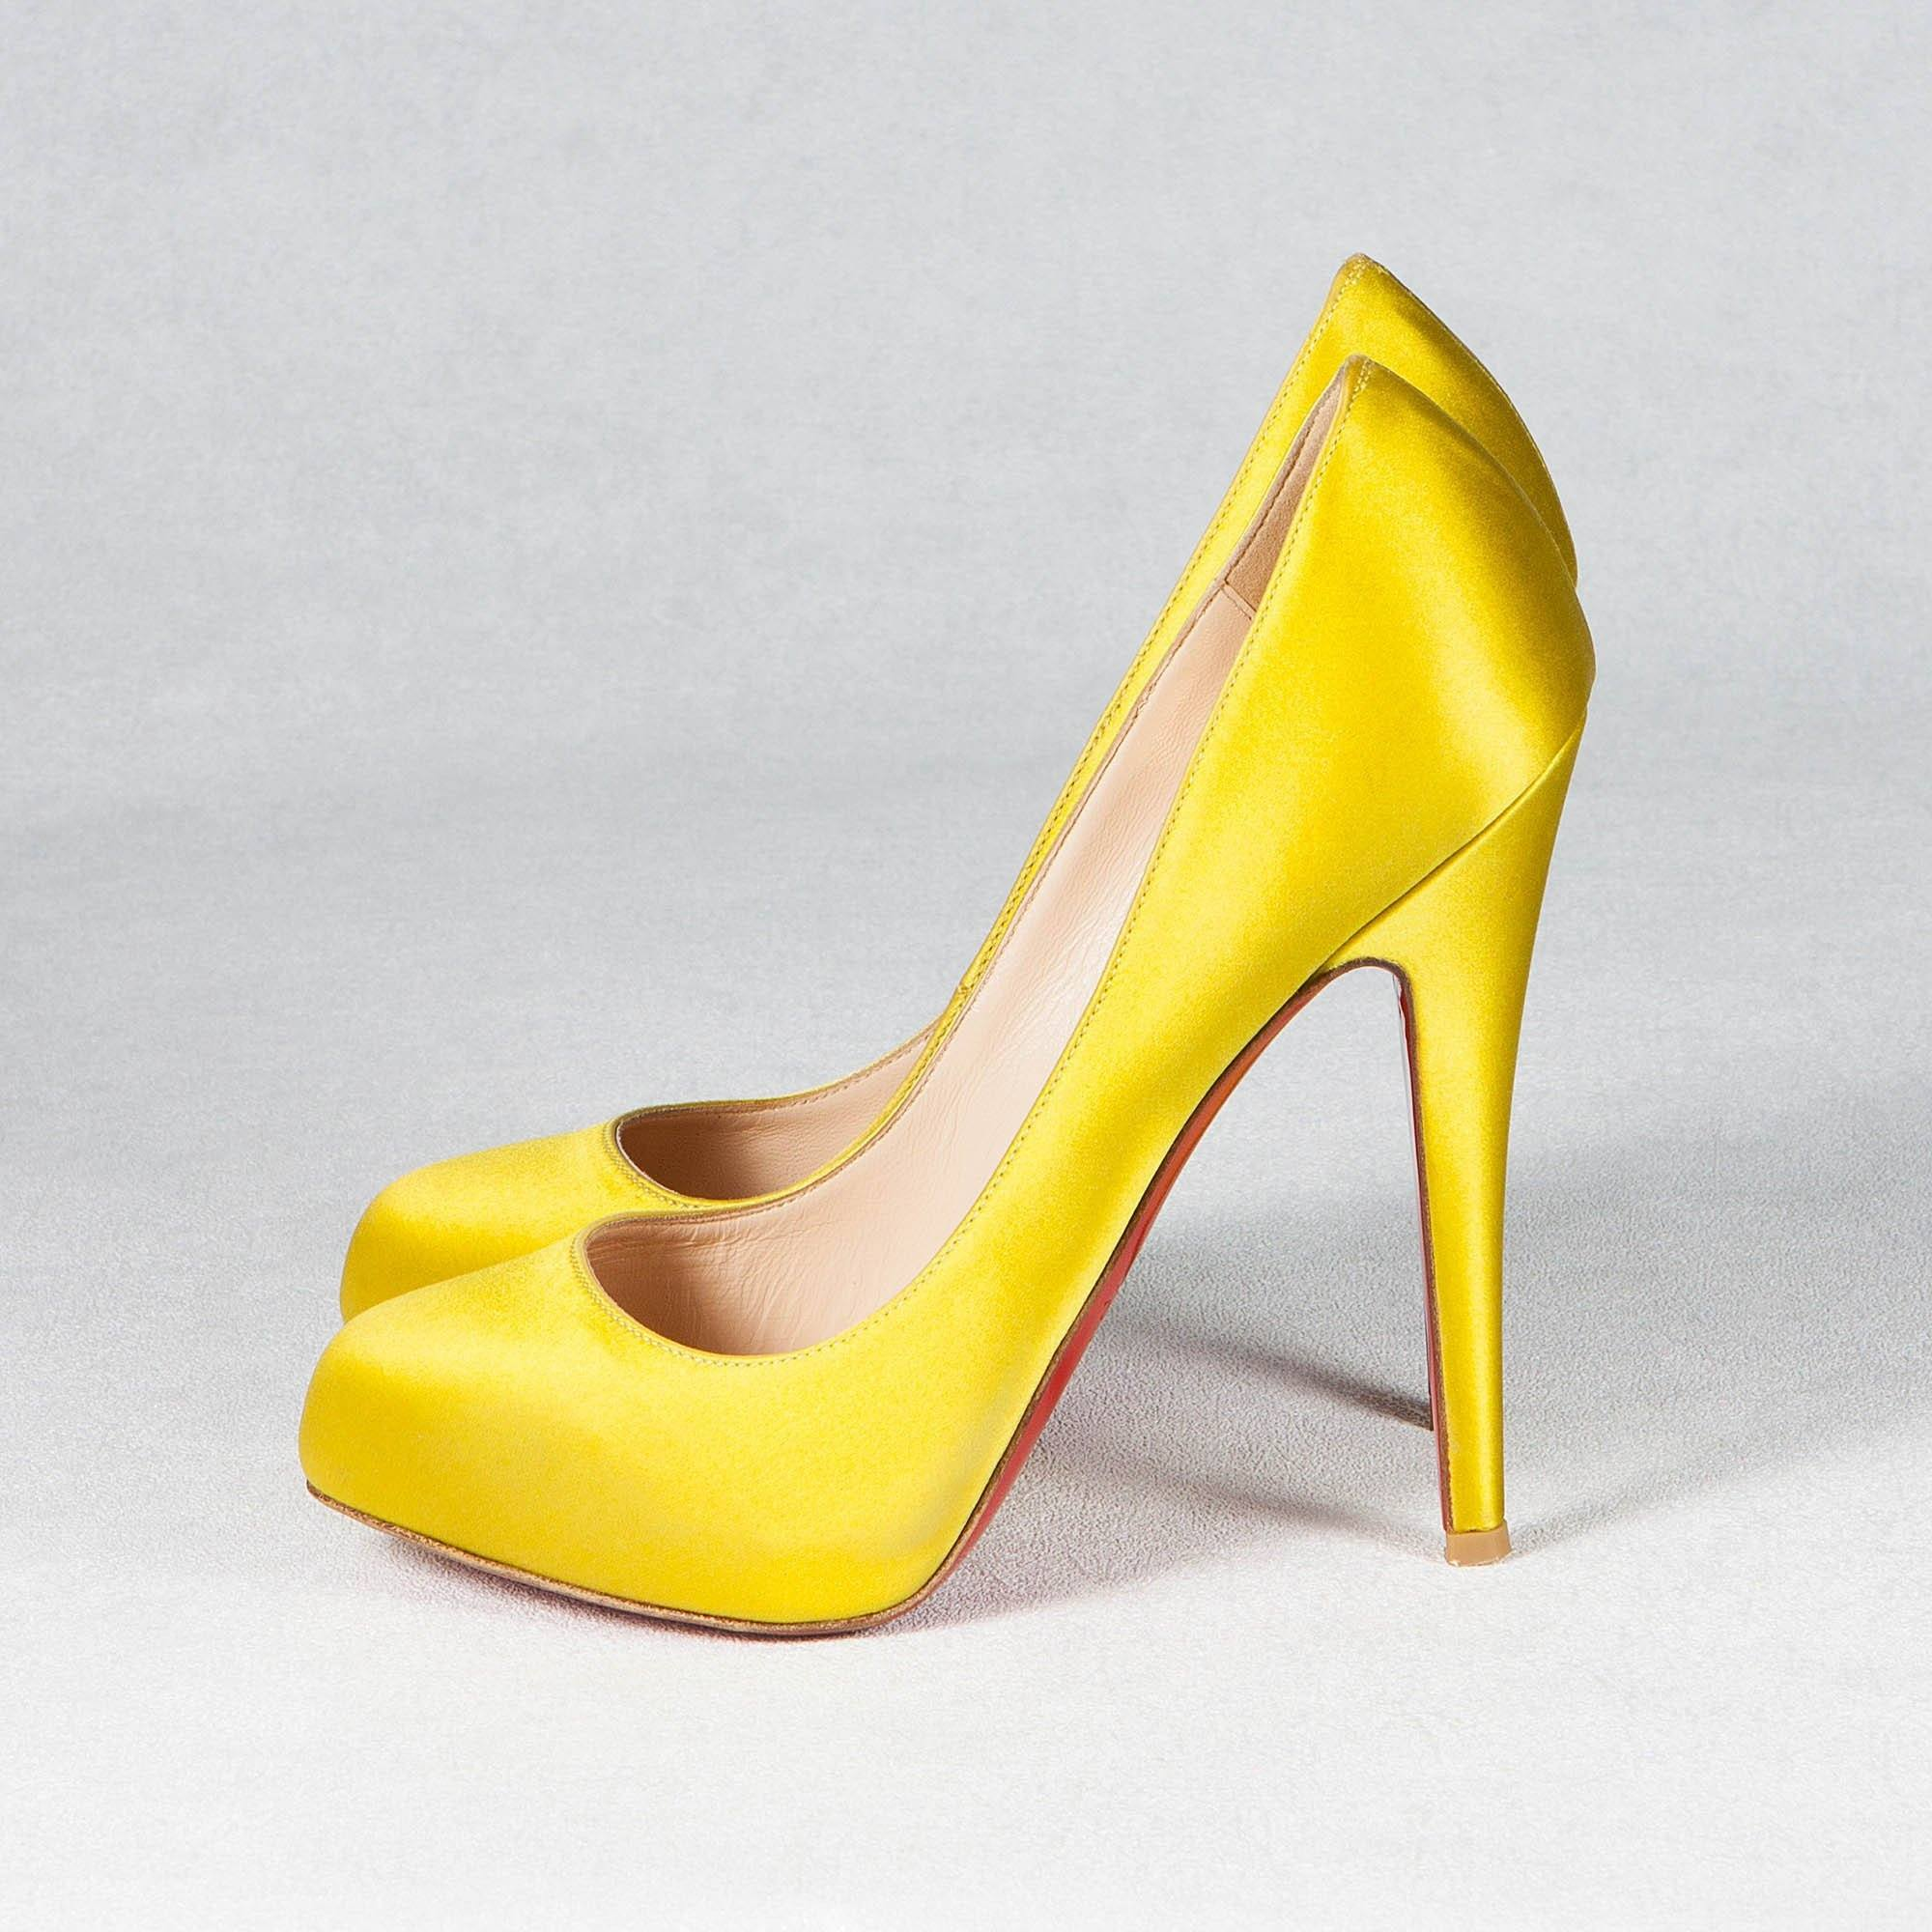 Christian Louboutin Mustard Satin Pumps